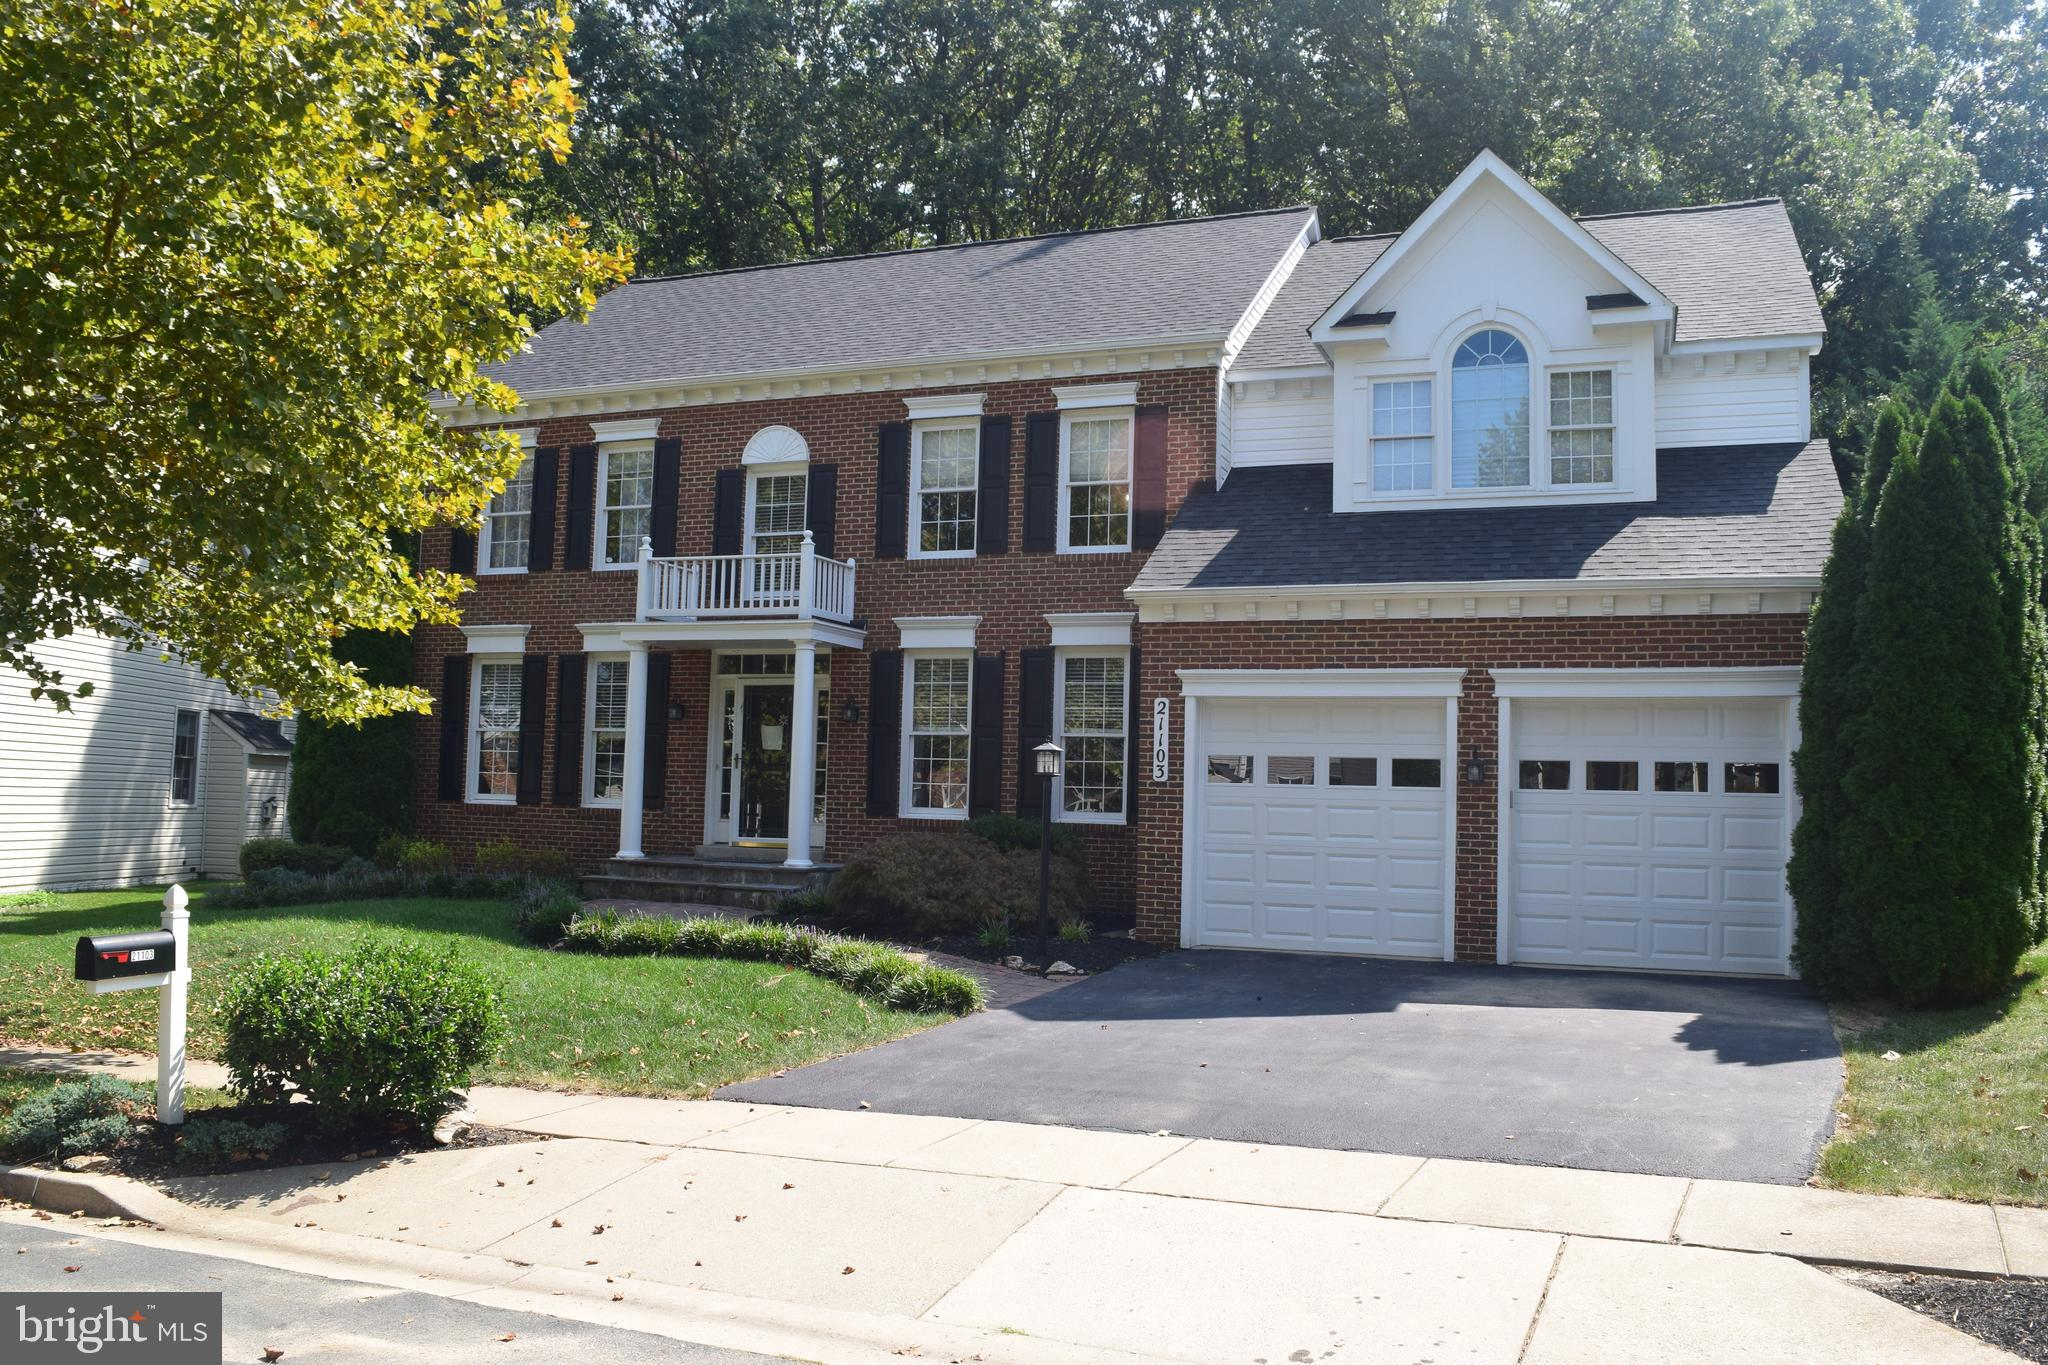 21103 HICKORY FOREST WAY, GERMANTOWN, MD 20876